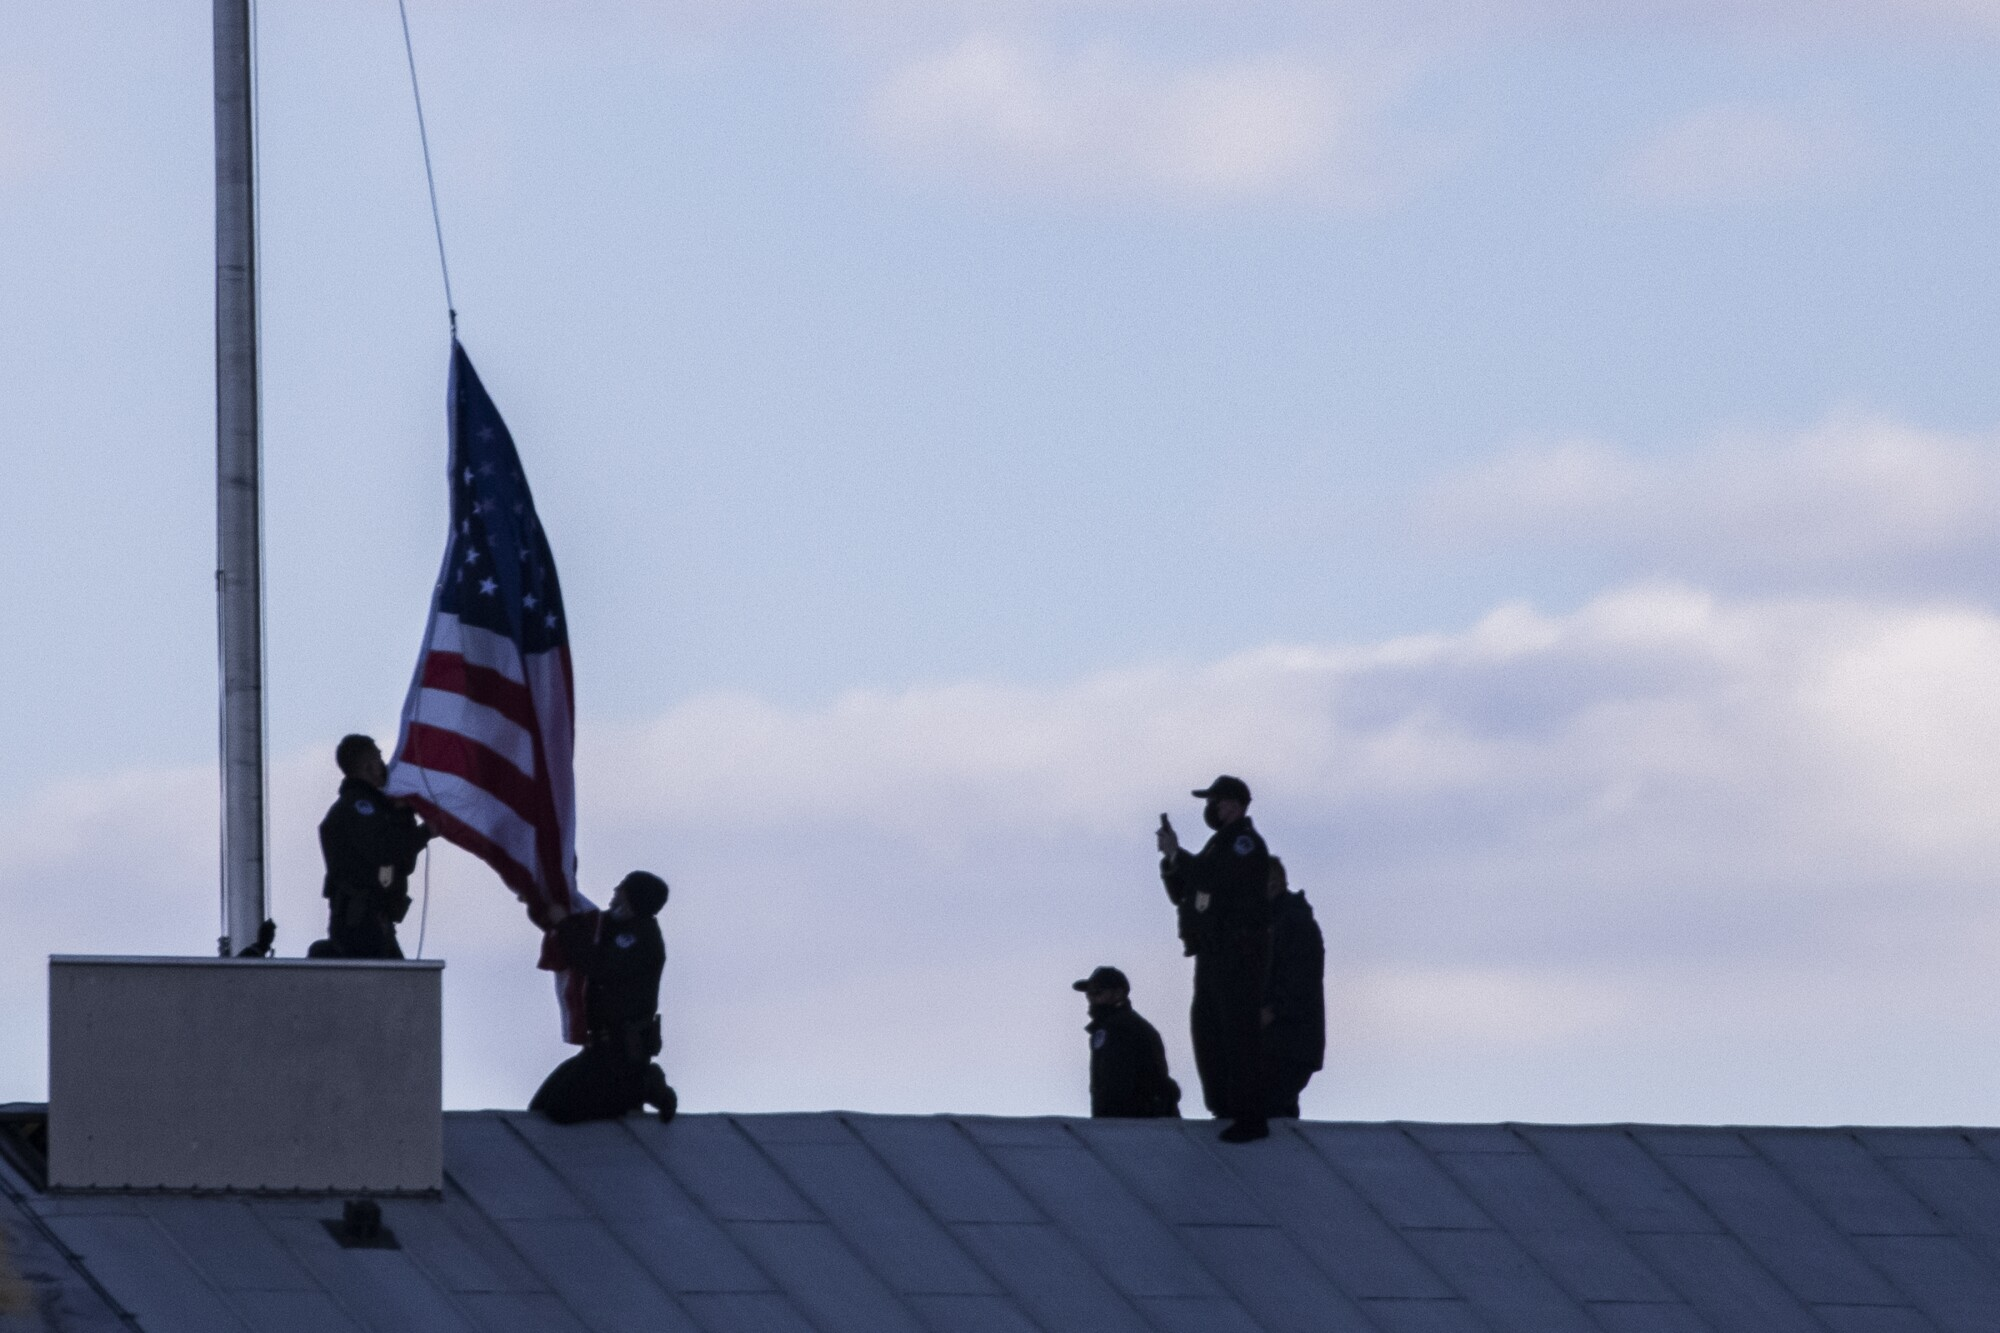 Capitol Police officers lower and replace the American flag to half staff over the U.S. Capitol